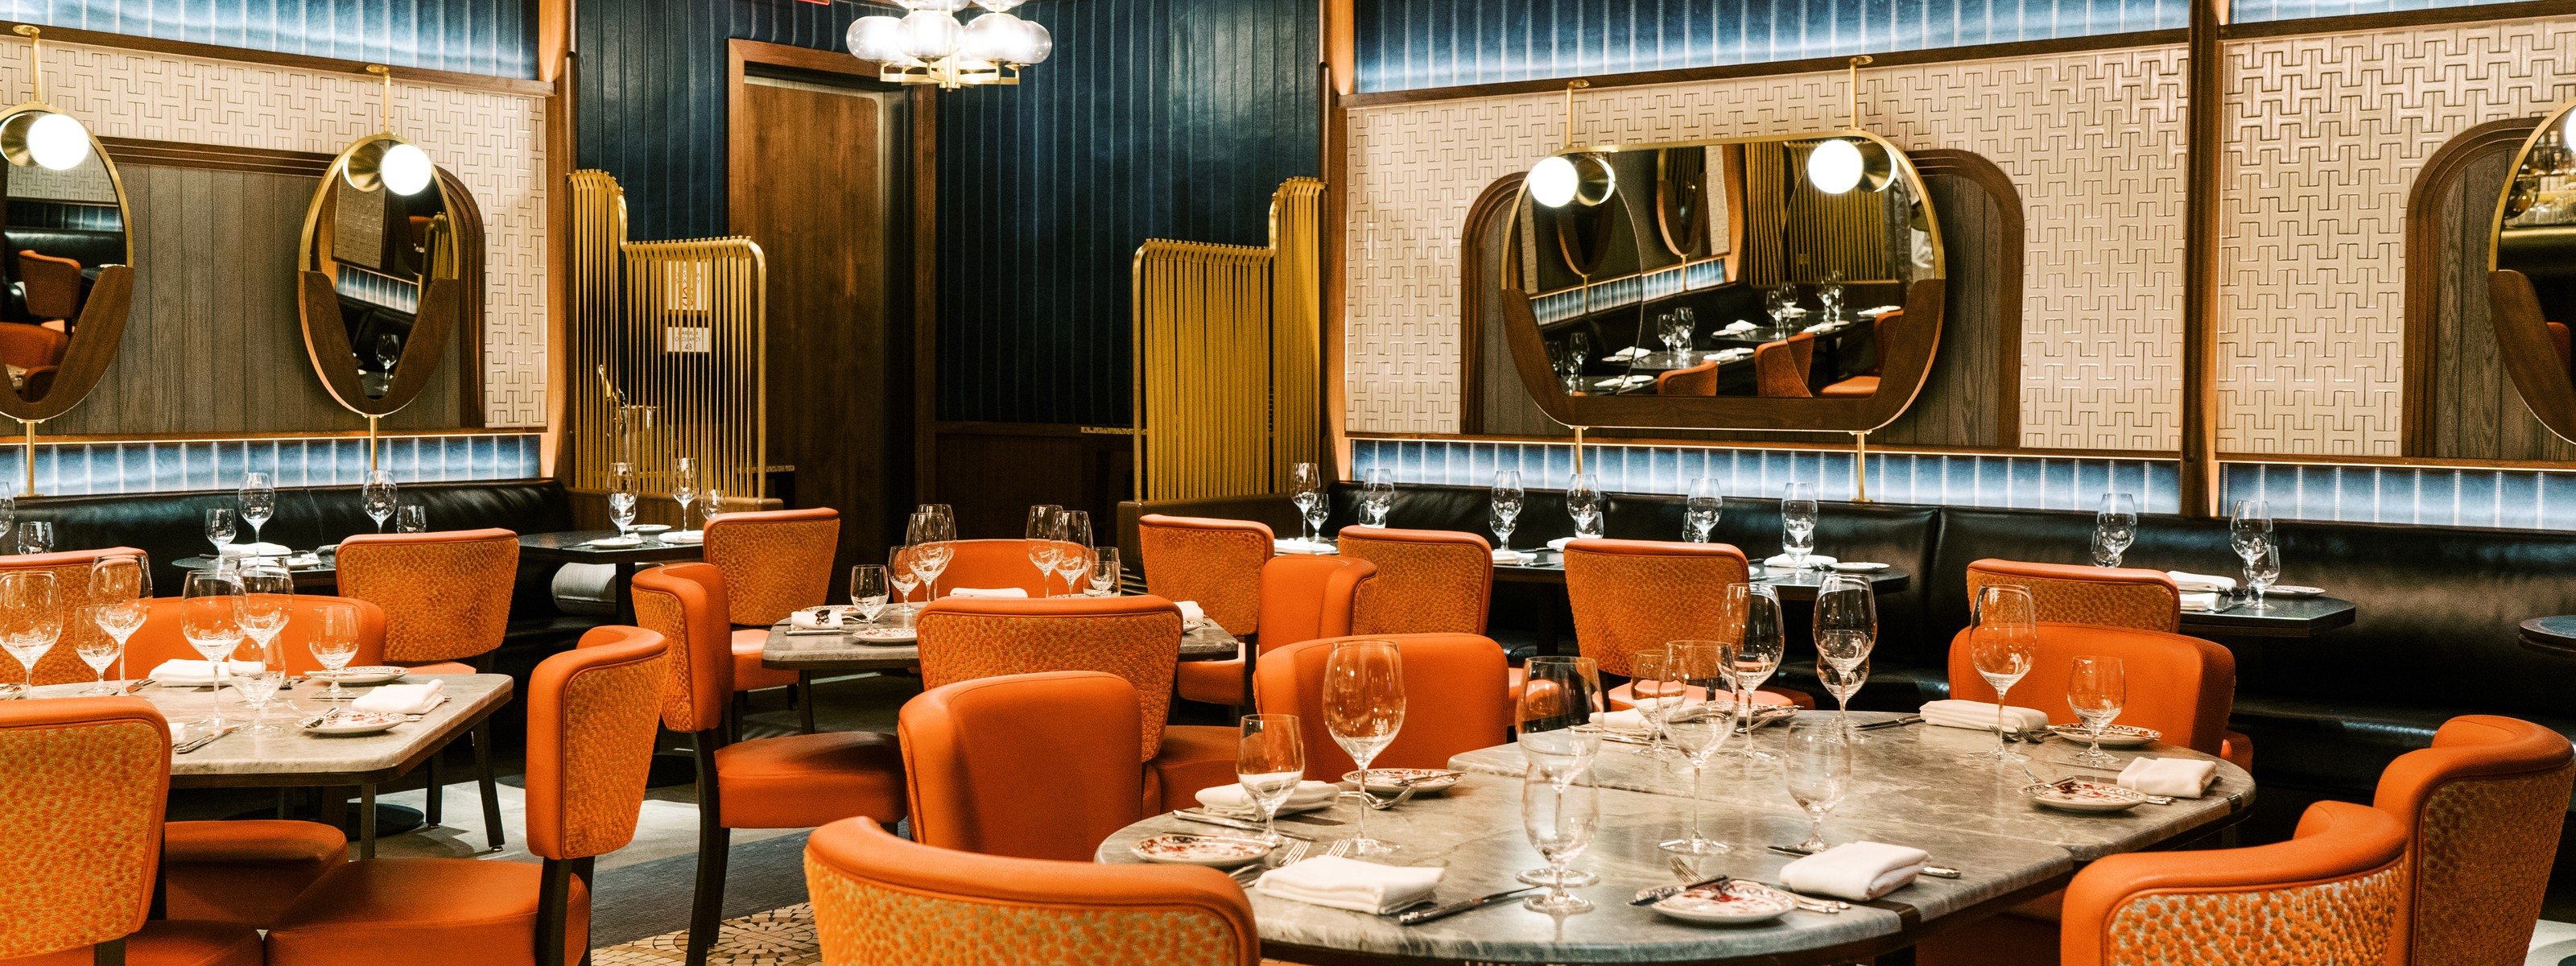 Where To Have Dinner With Clients In Las Vegas Las Vegas